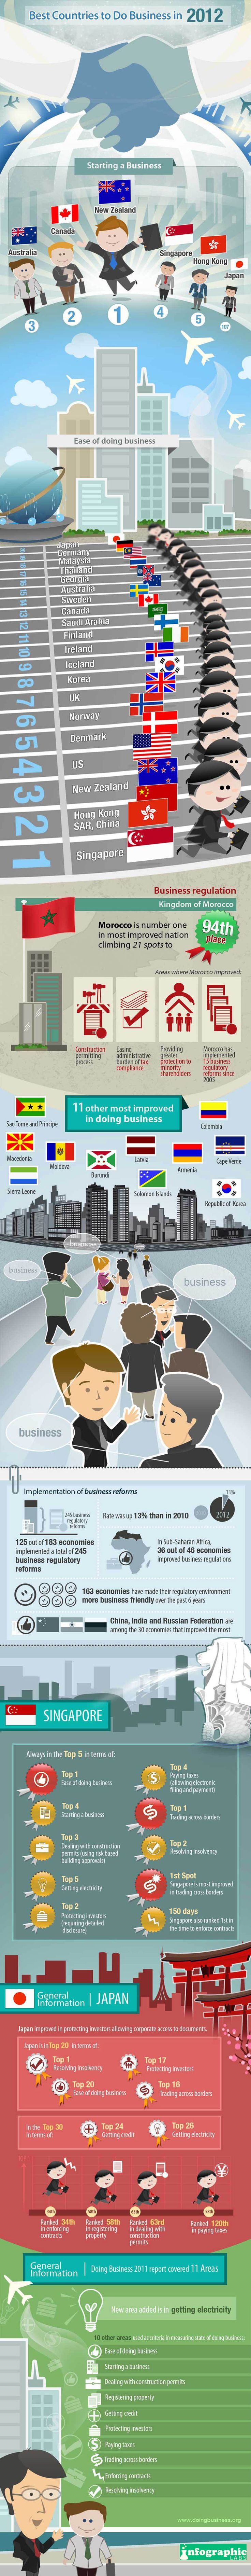 What are the best countries to do business in? infographic